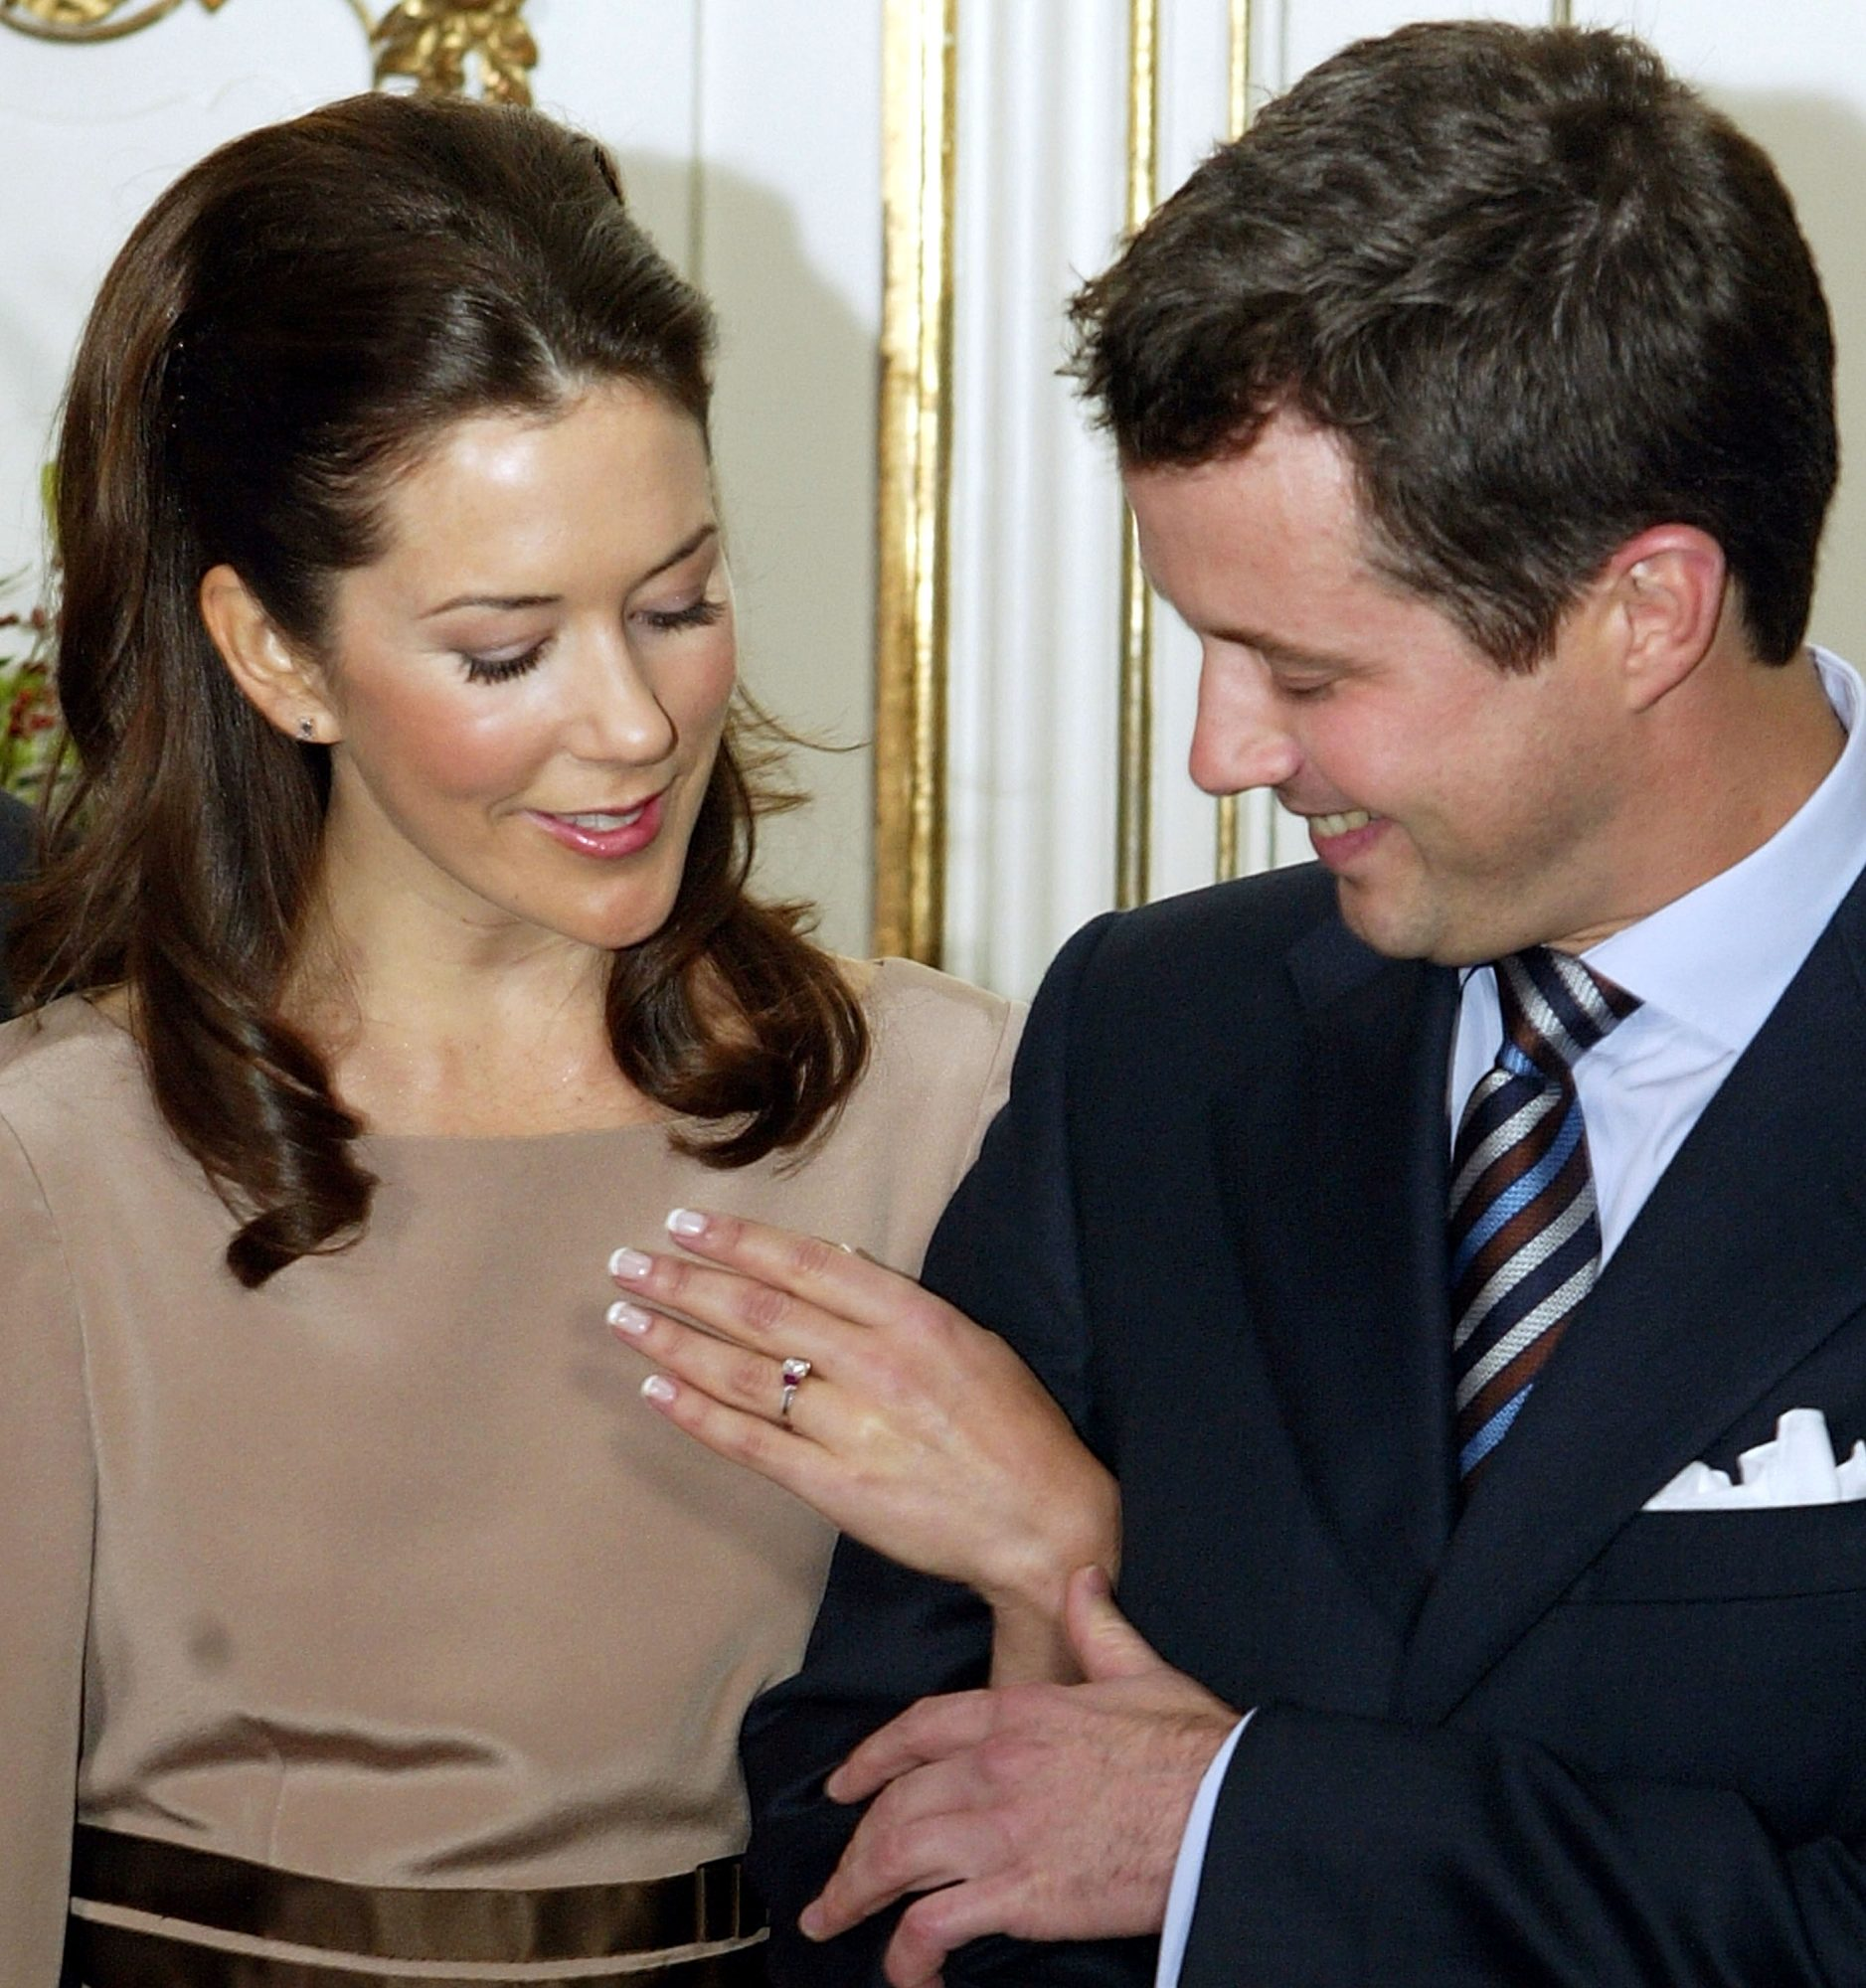 Royal Engagement Rings Mary, Crown Princess of Denmark